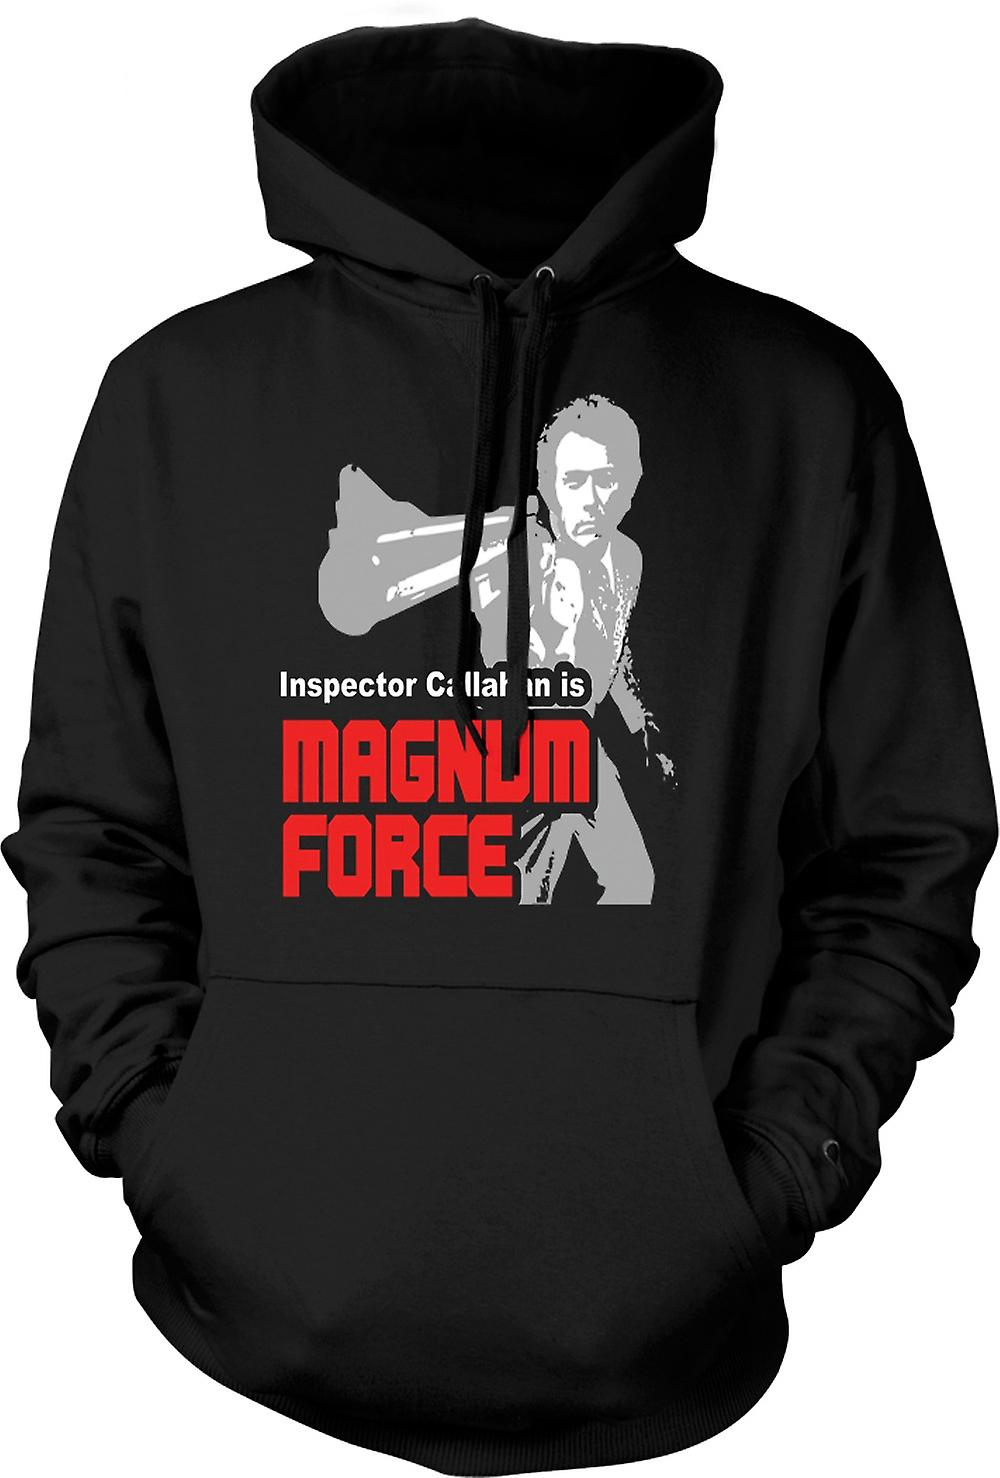 Mens Hoodie - Dirty Harry Magnum Force - Movie